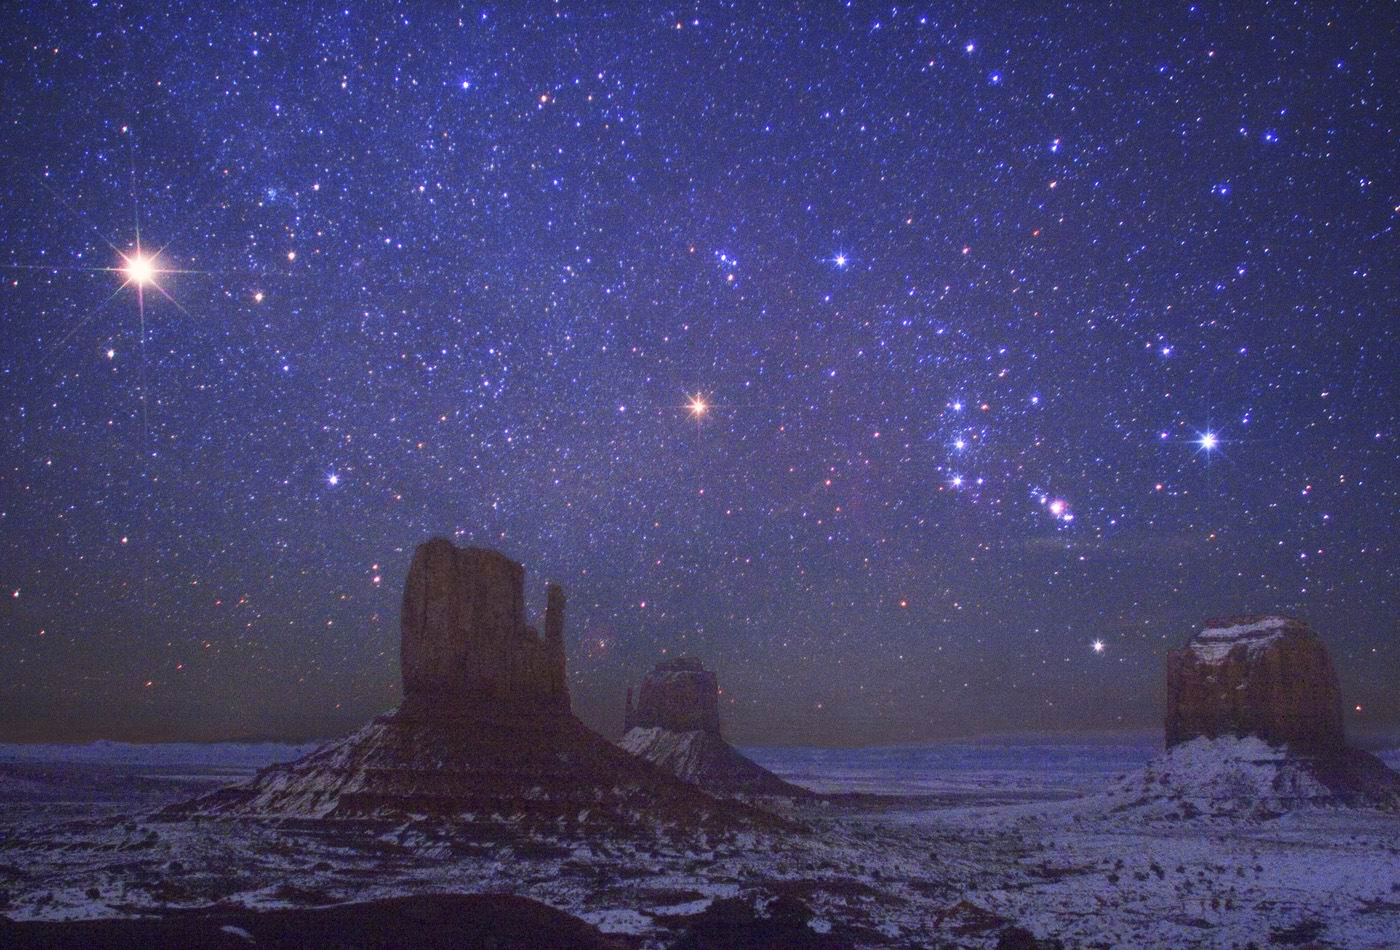 Marte e Órion em Monument Valley, Arizona. Crédito ©: Wally Pacholka (Astropics.com)